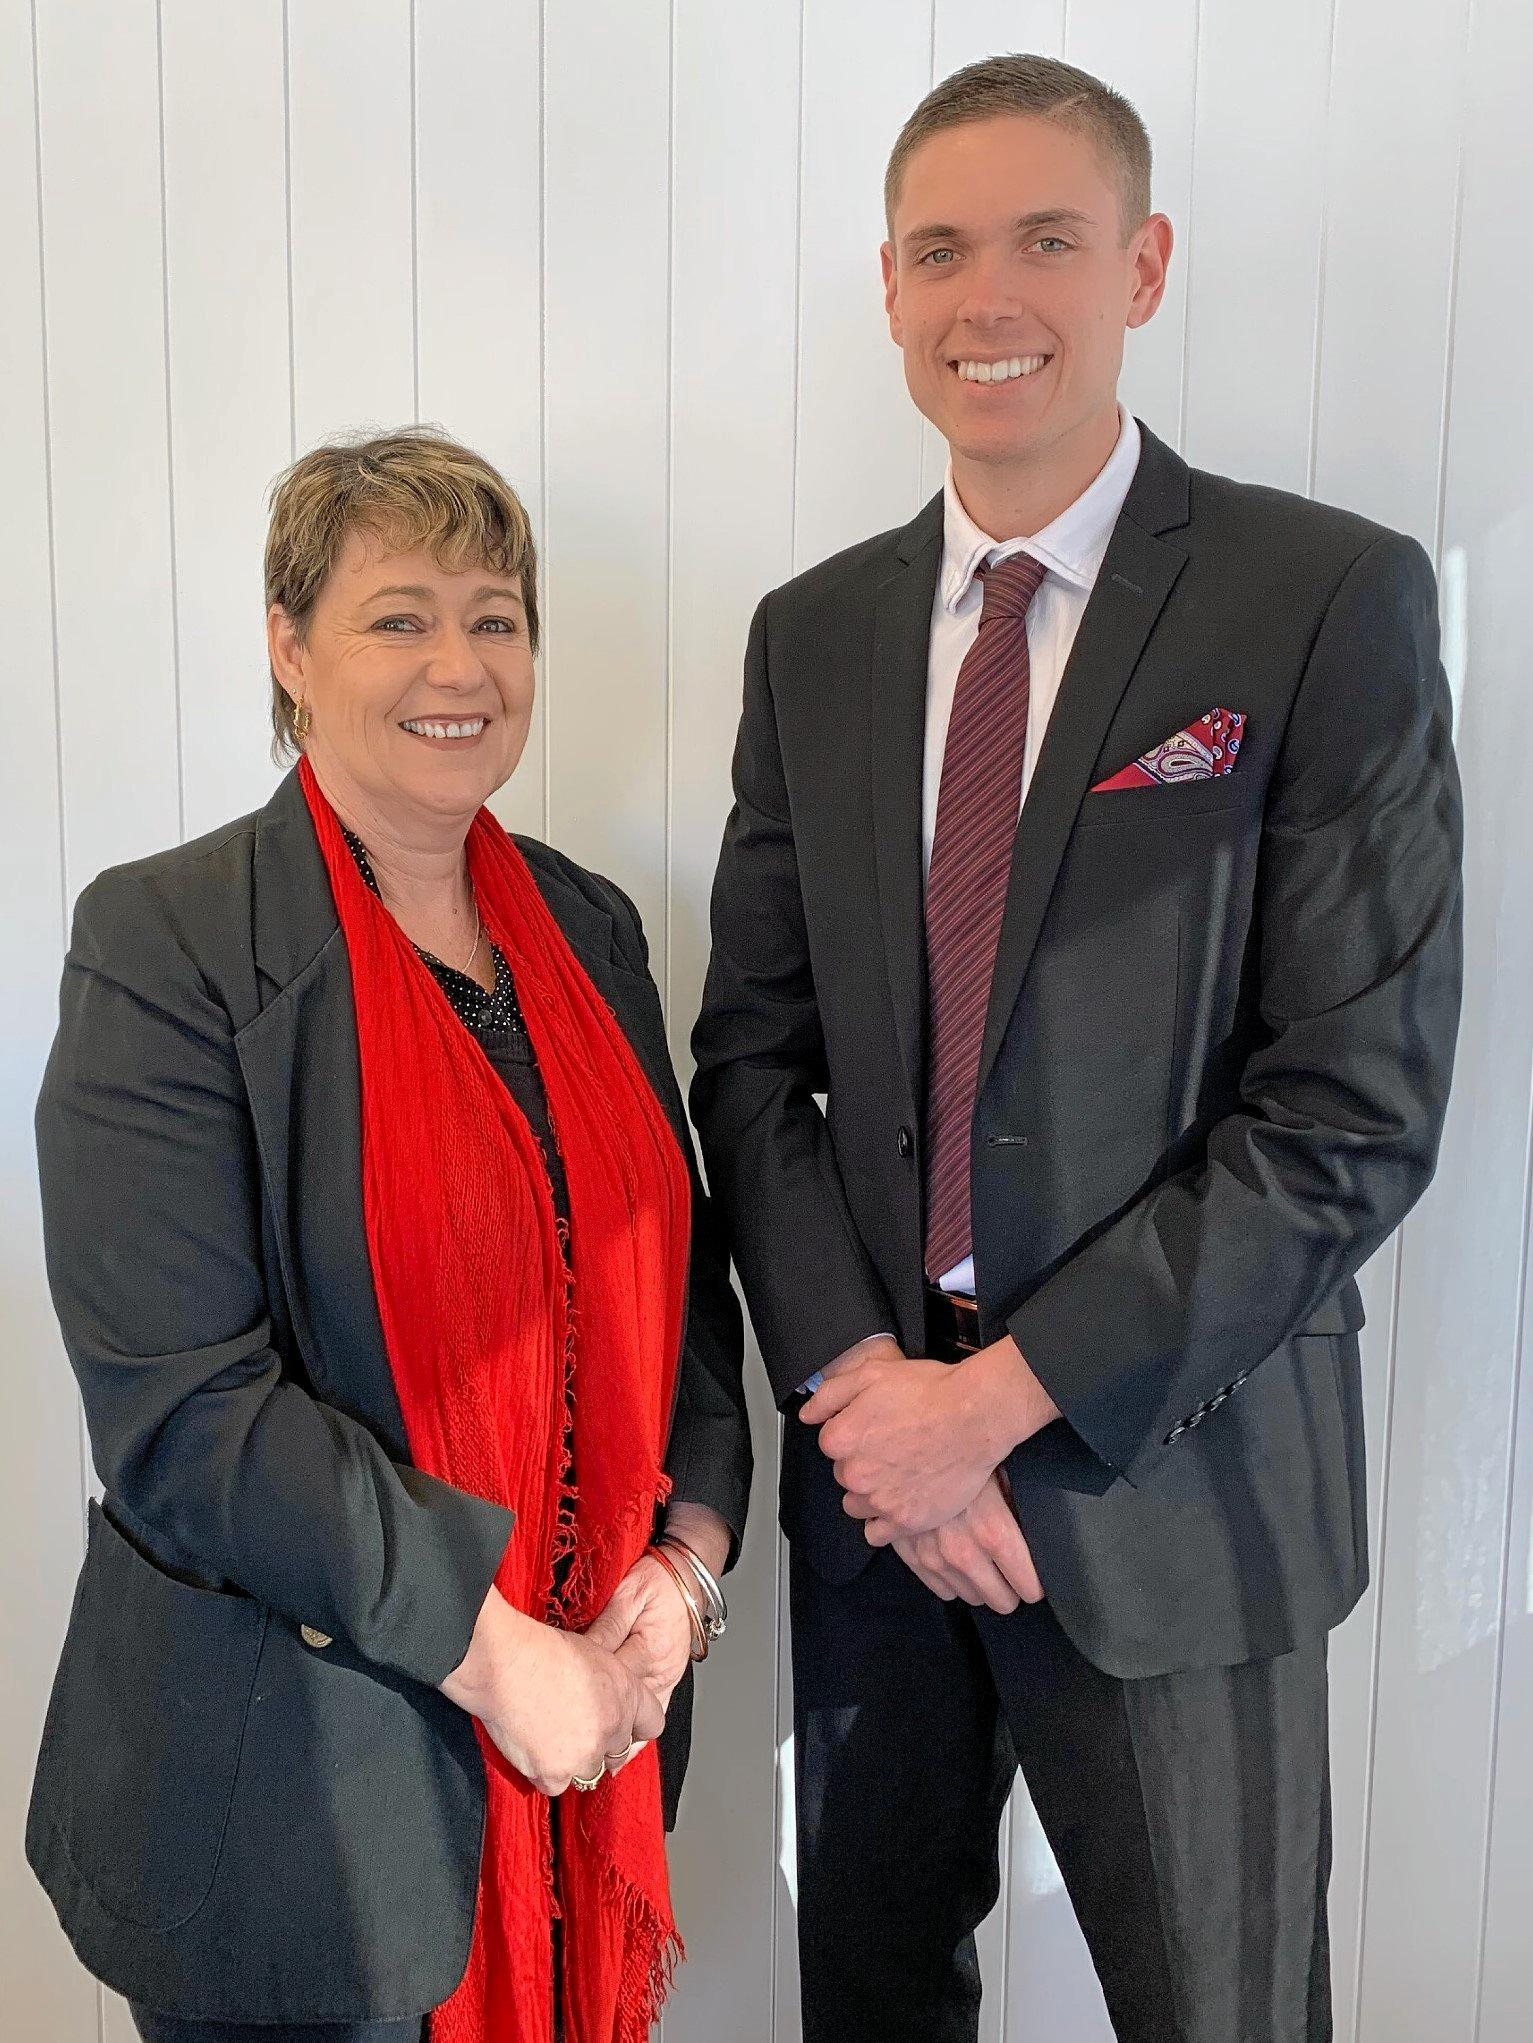 NEW ERA: Janelle Baisden-Emmett and Trent Faunt are changing their business name to Faunt and Emmett Real Estate.